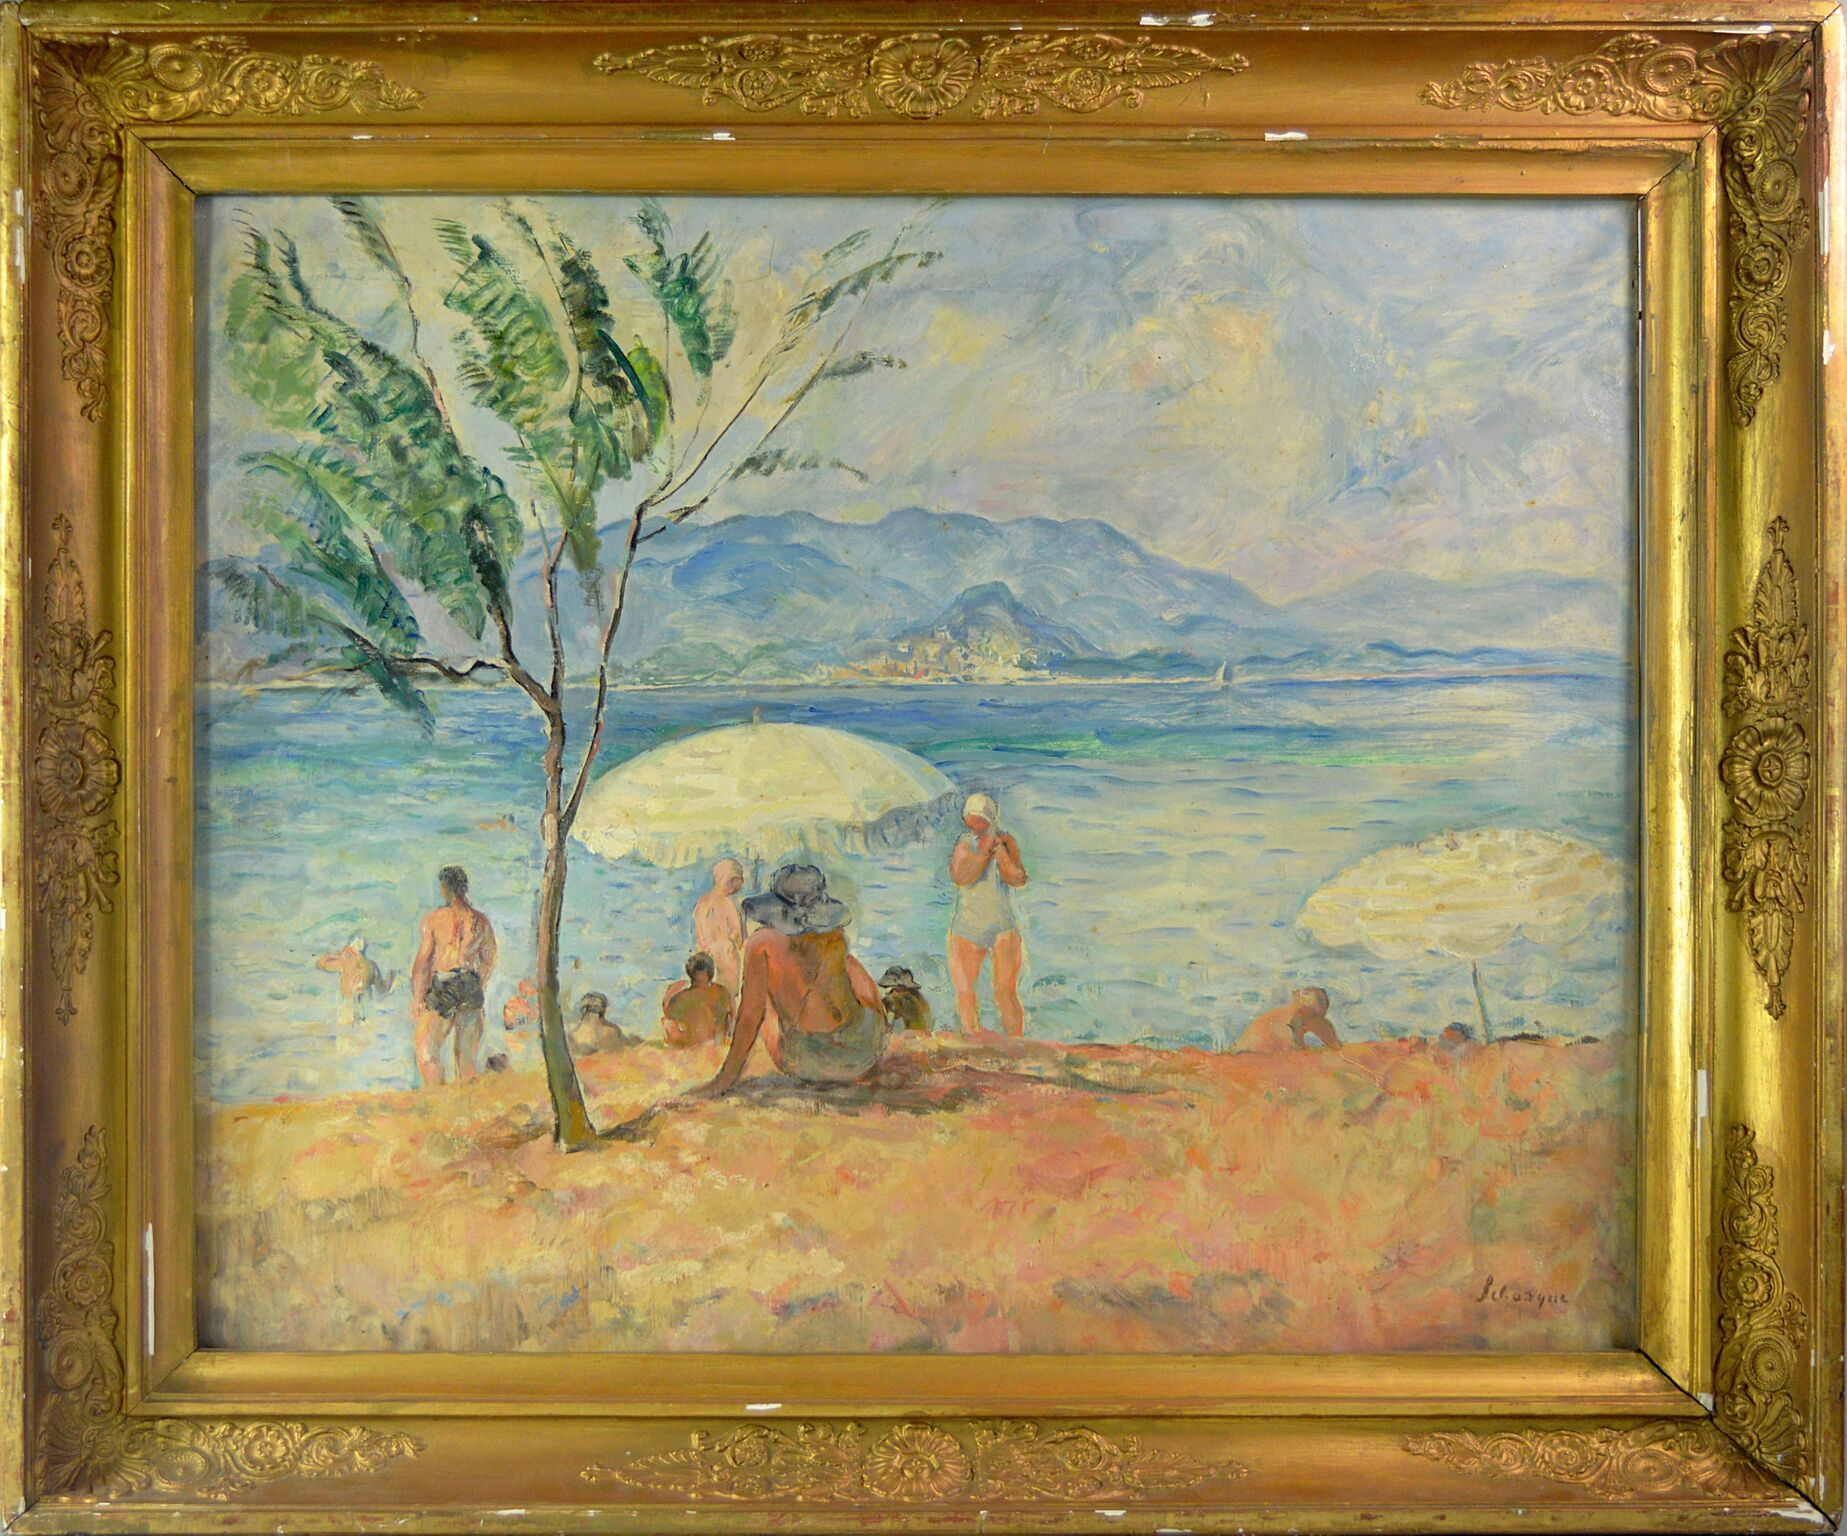 20th century French paintings starring in Roseberys auction Sept. 8